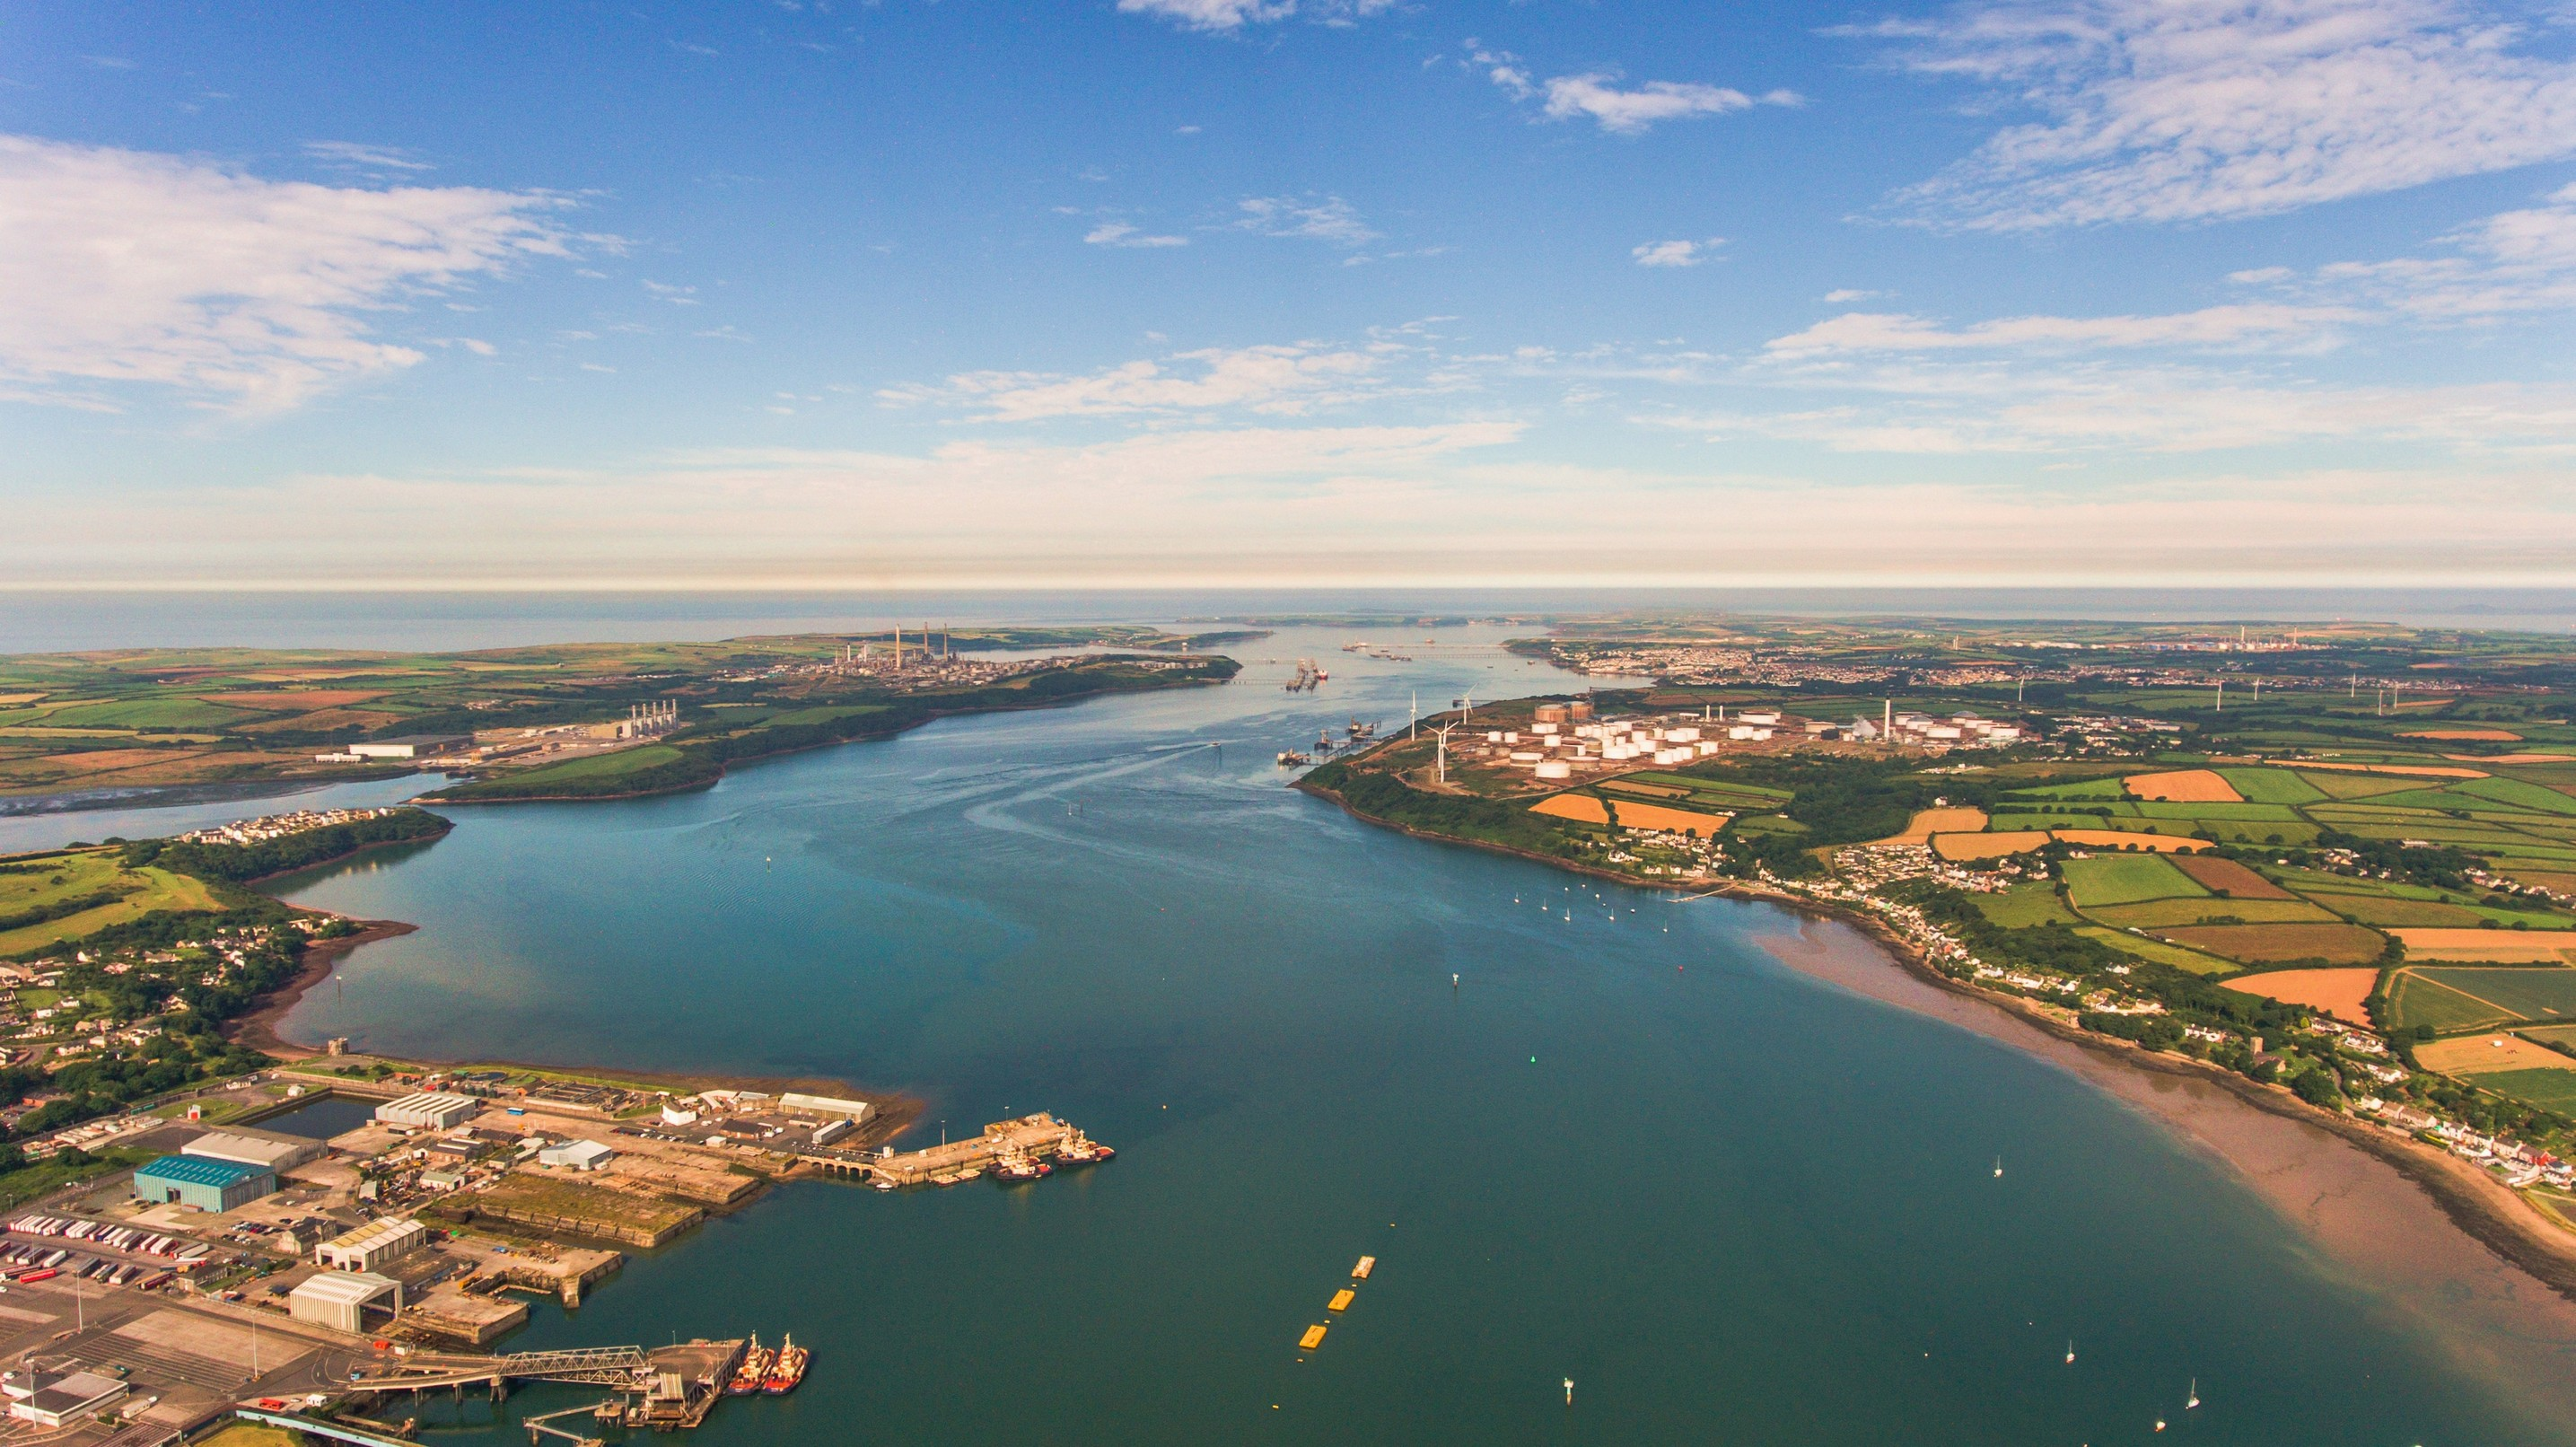 Aerial photo of the Milford Haven Estuary where the META will be developed